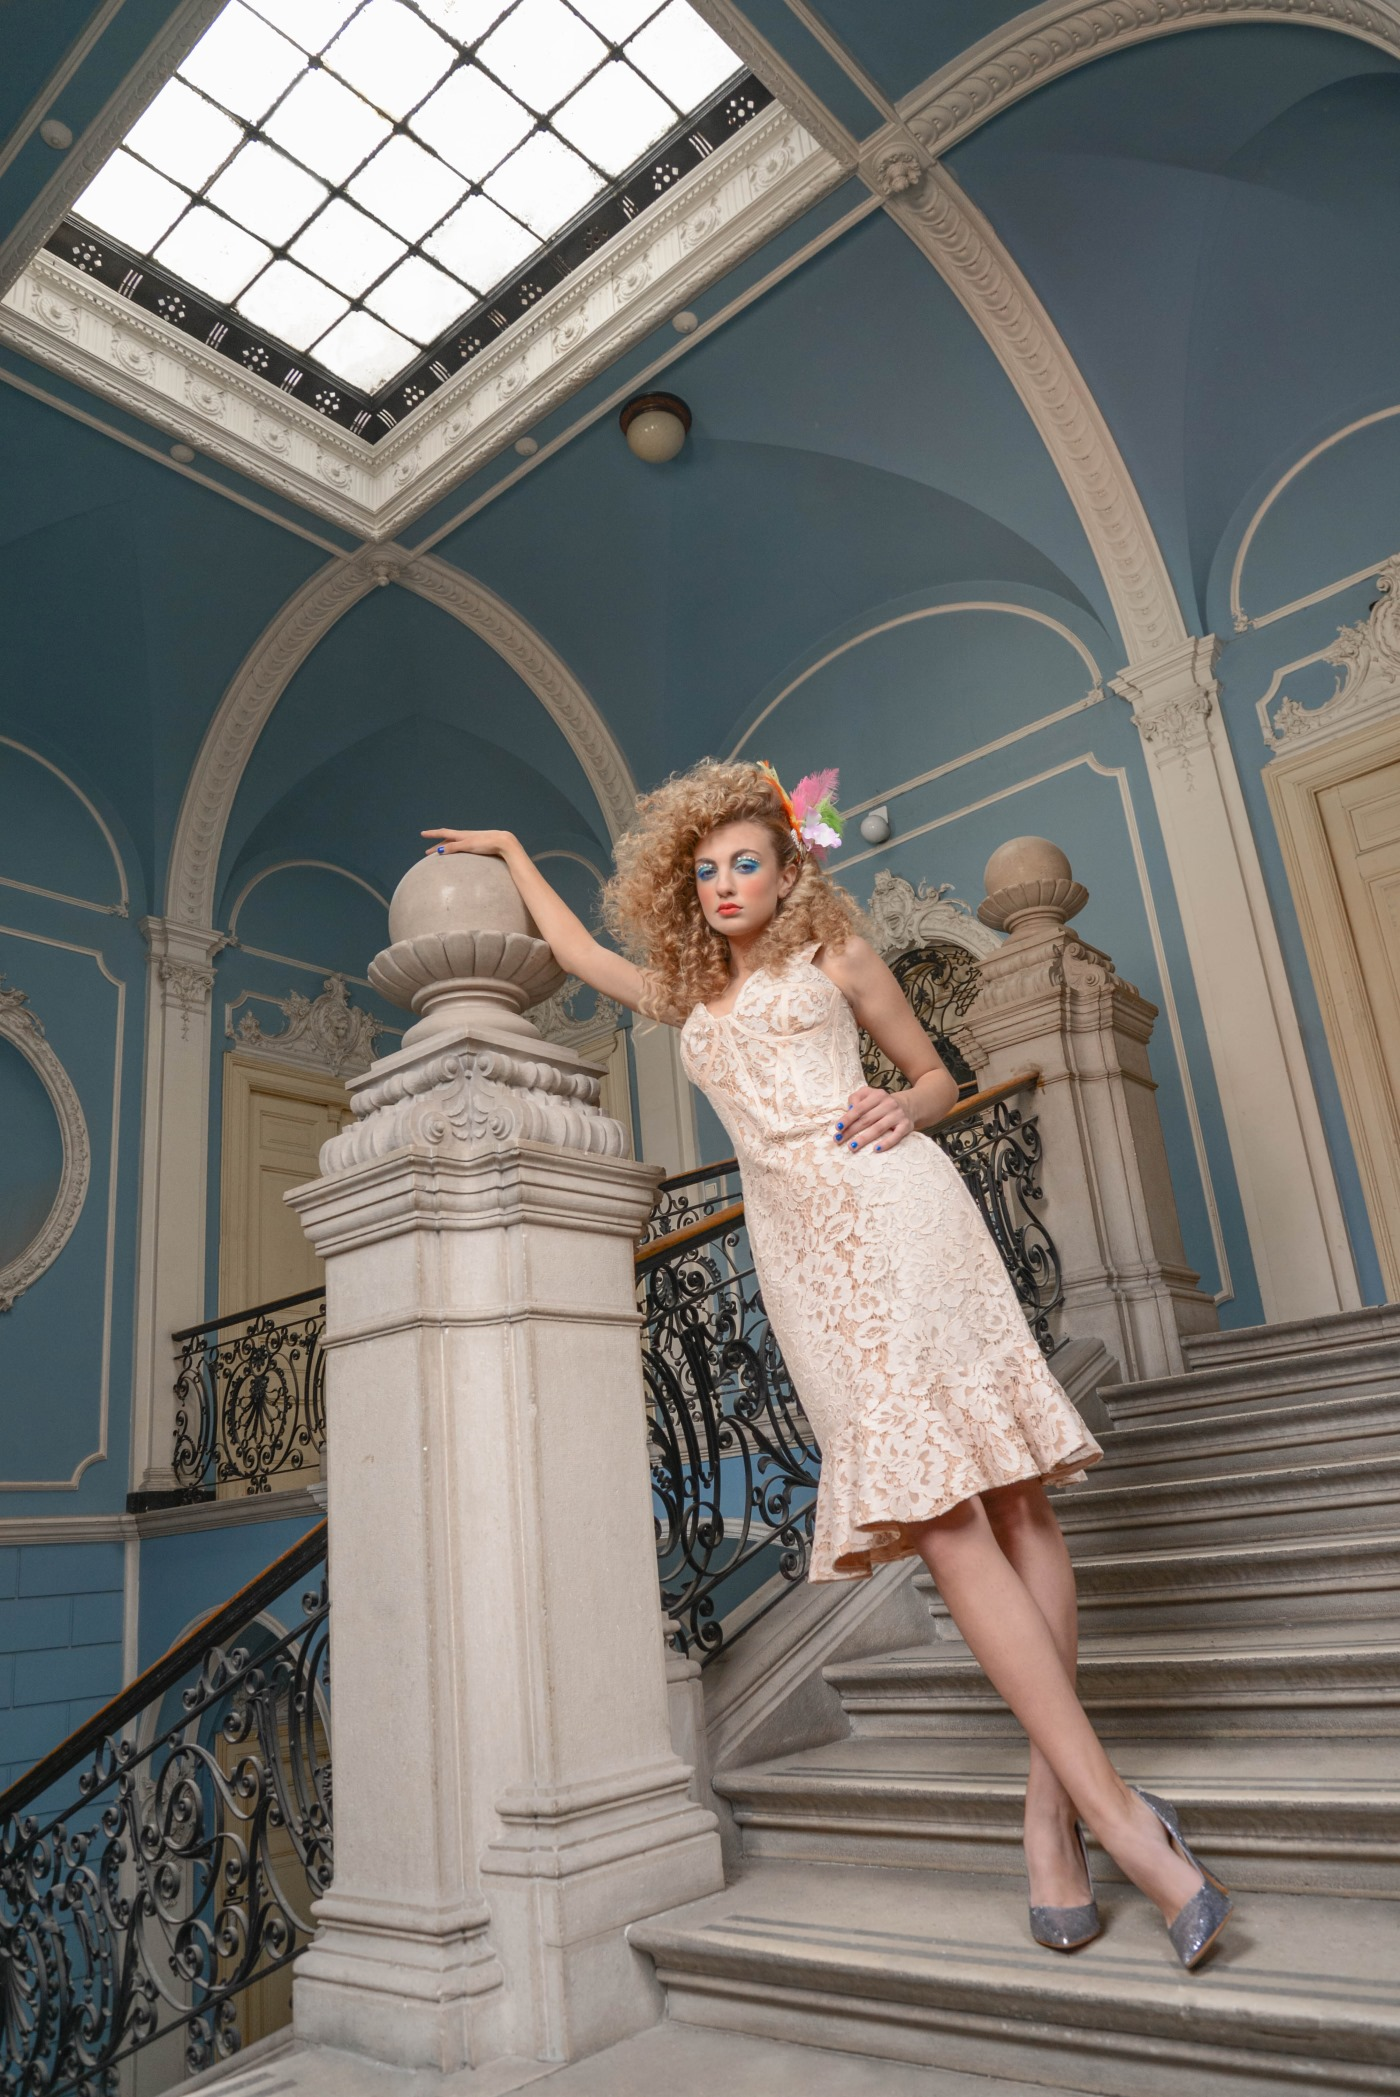 Extravagant editorijal: Is it spring or not?